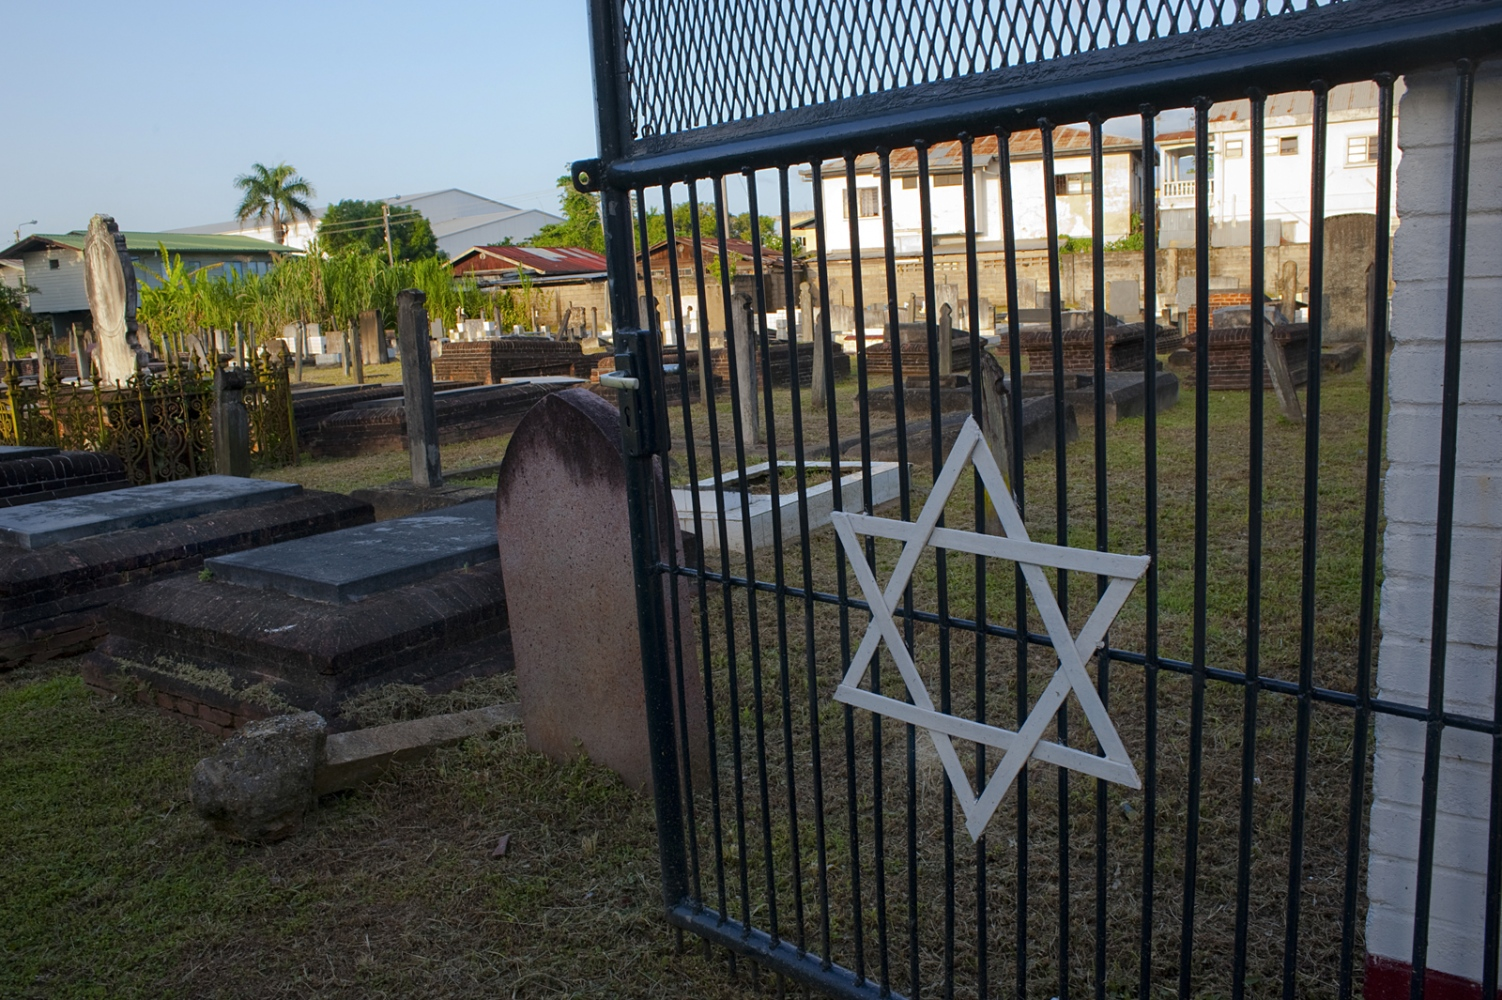 One of several Jewish cemeteries in Paramaribo